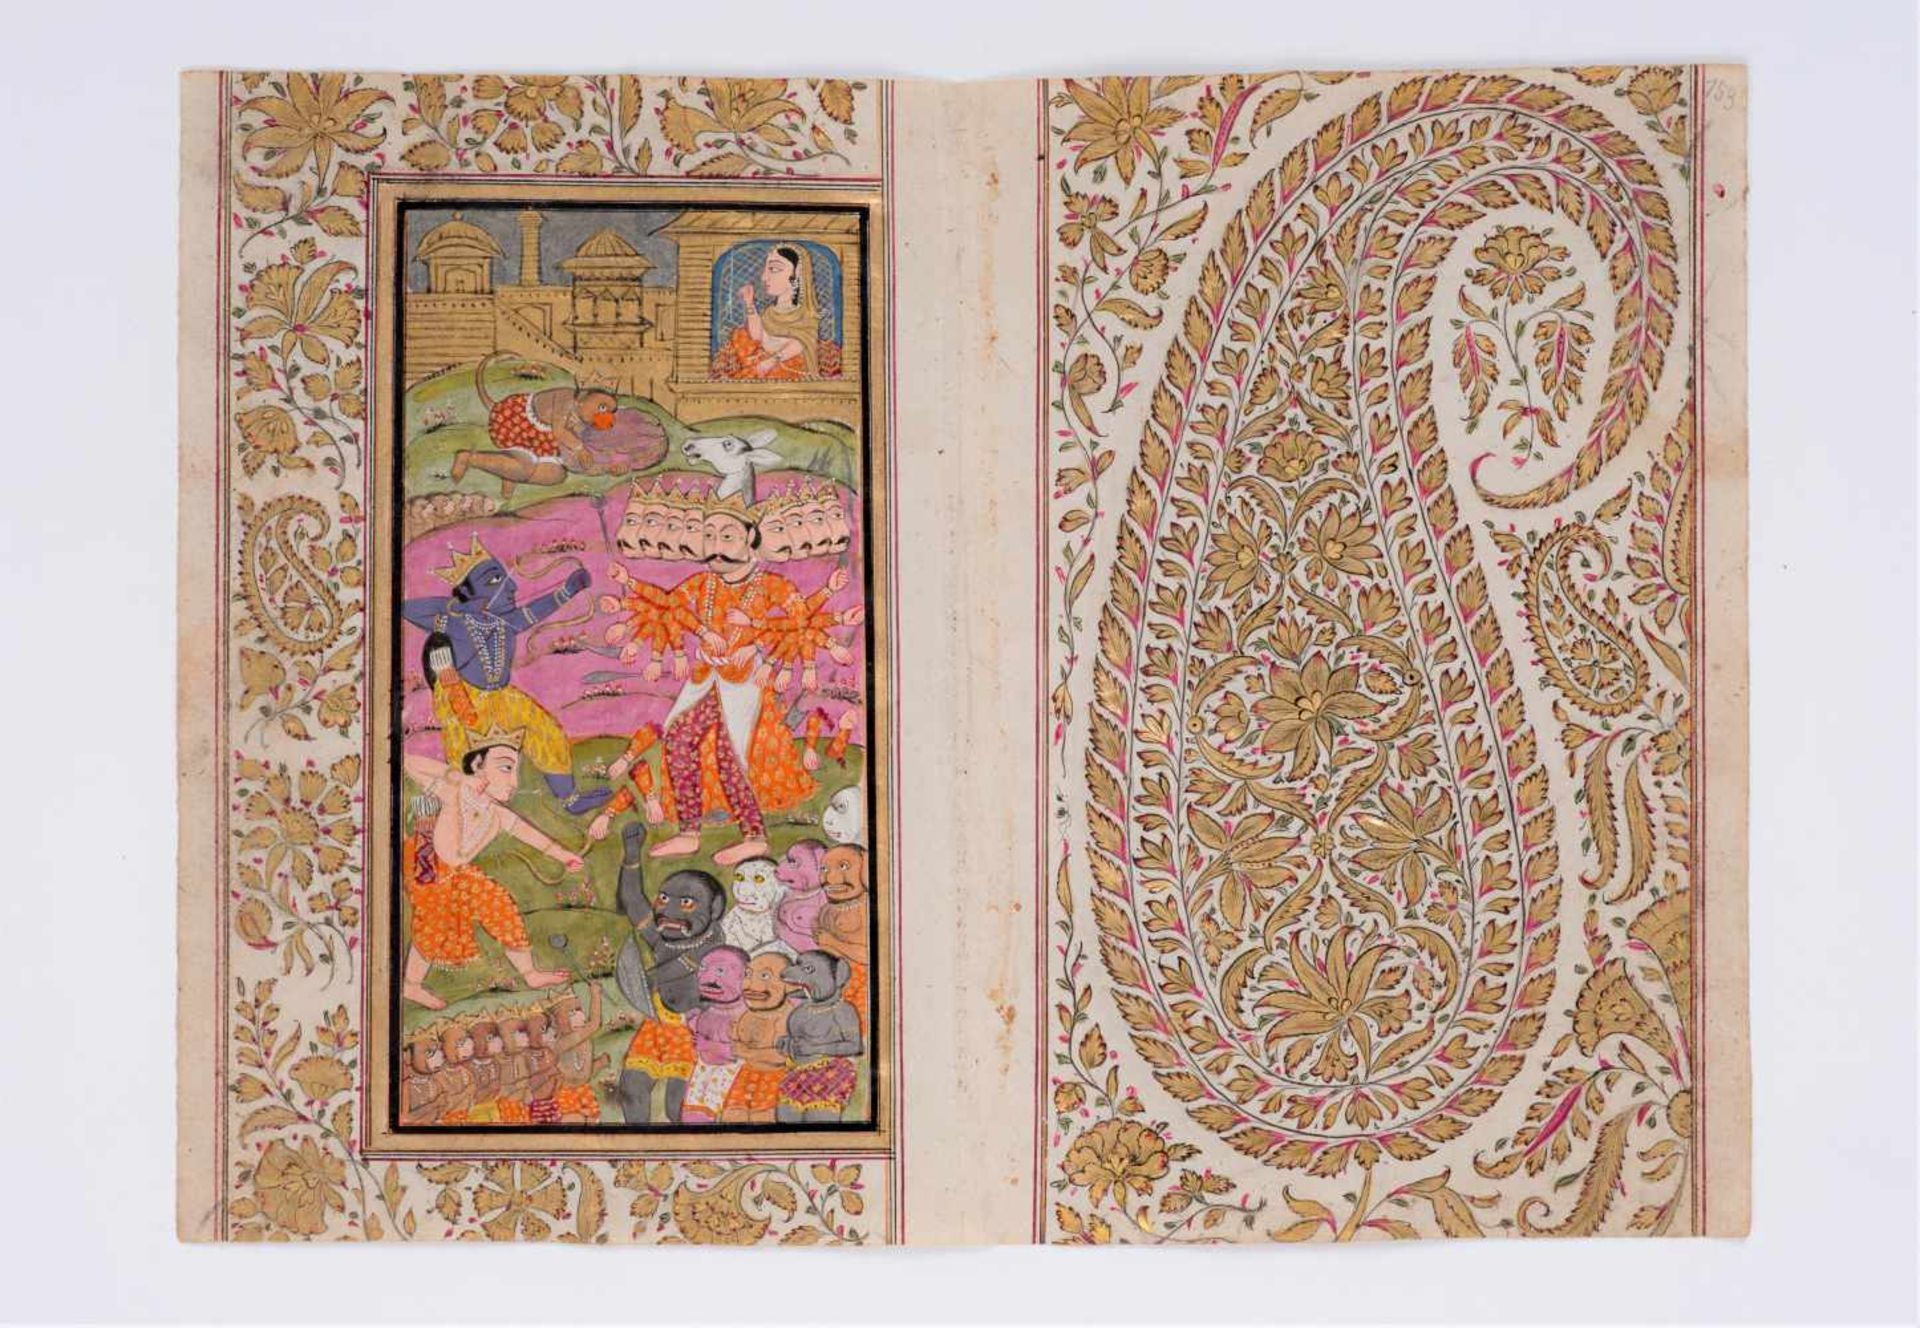 PAIR OF ELABORATE INDIAN MINIATURE PAINTINGS - 19TH CENTURYMiniature painting with colors and gold